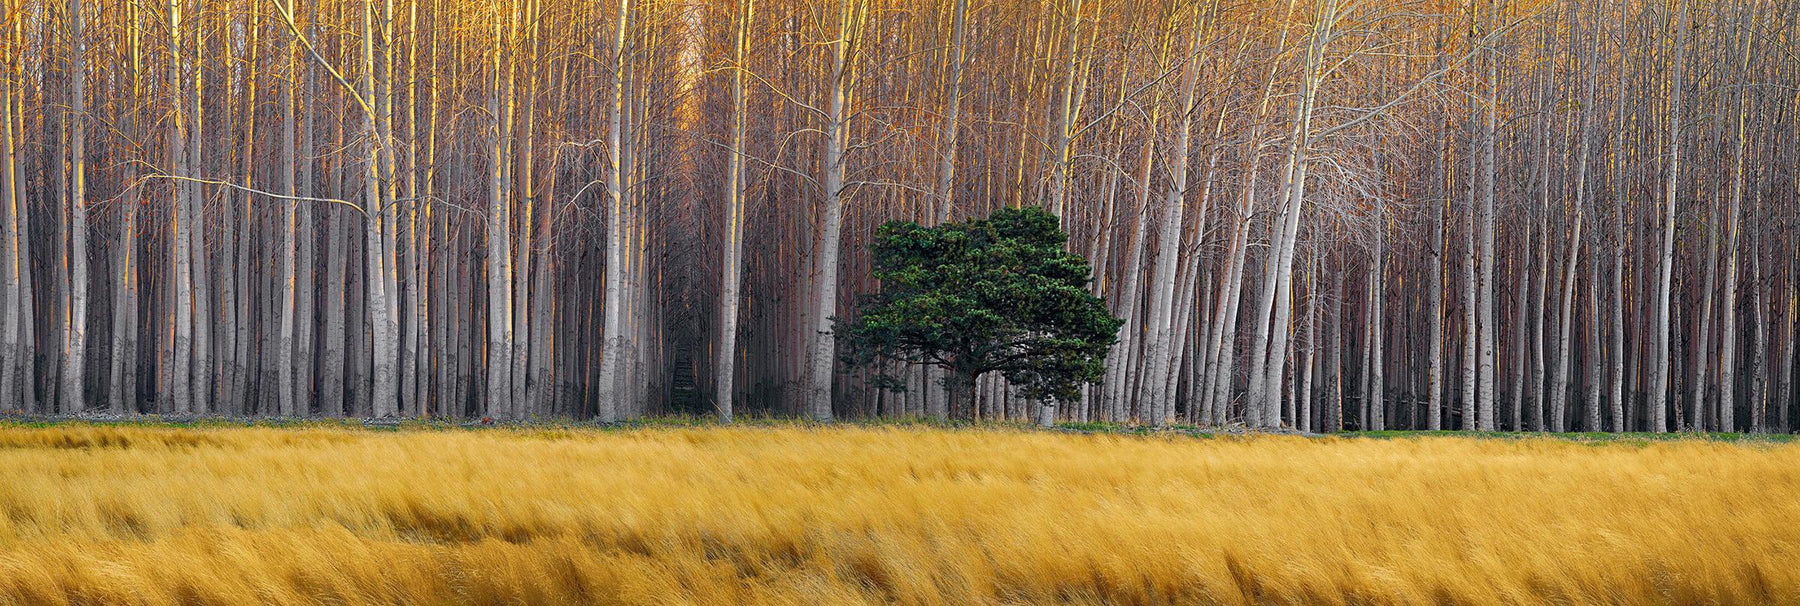 Green tree in a yellow grass field in front of a forest of leafless white poplar trees